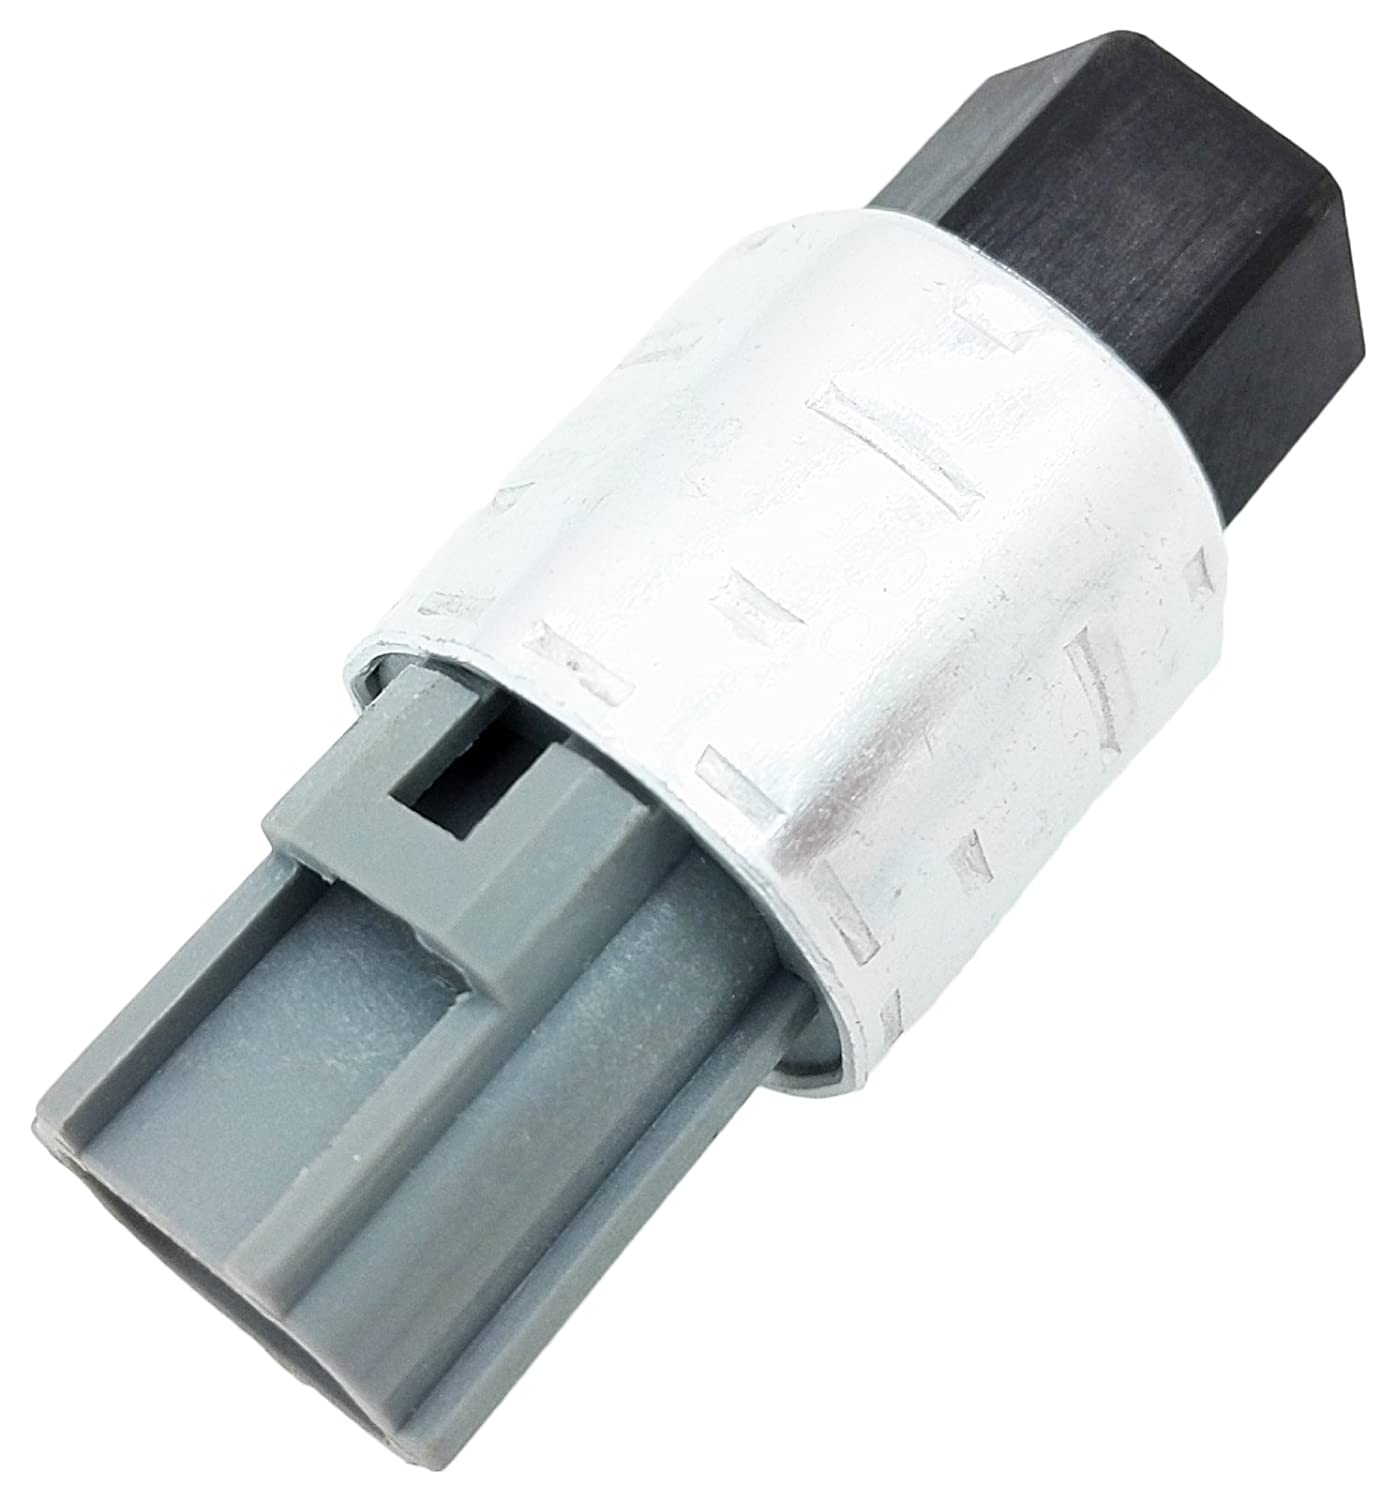 A/C Clutch Cycle Pressure Switch for Chrysler PT Cruiser Dodge Neon Jeep Liberty Okay Motor Products